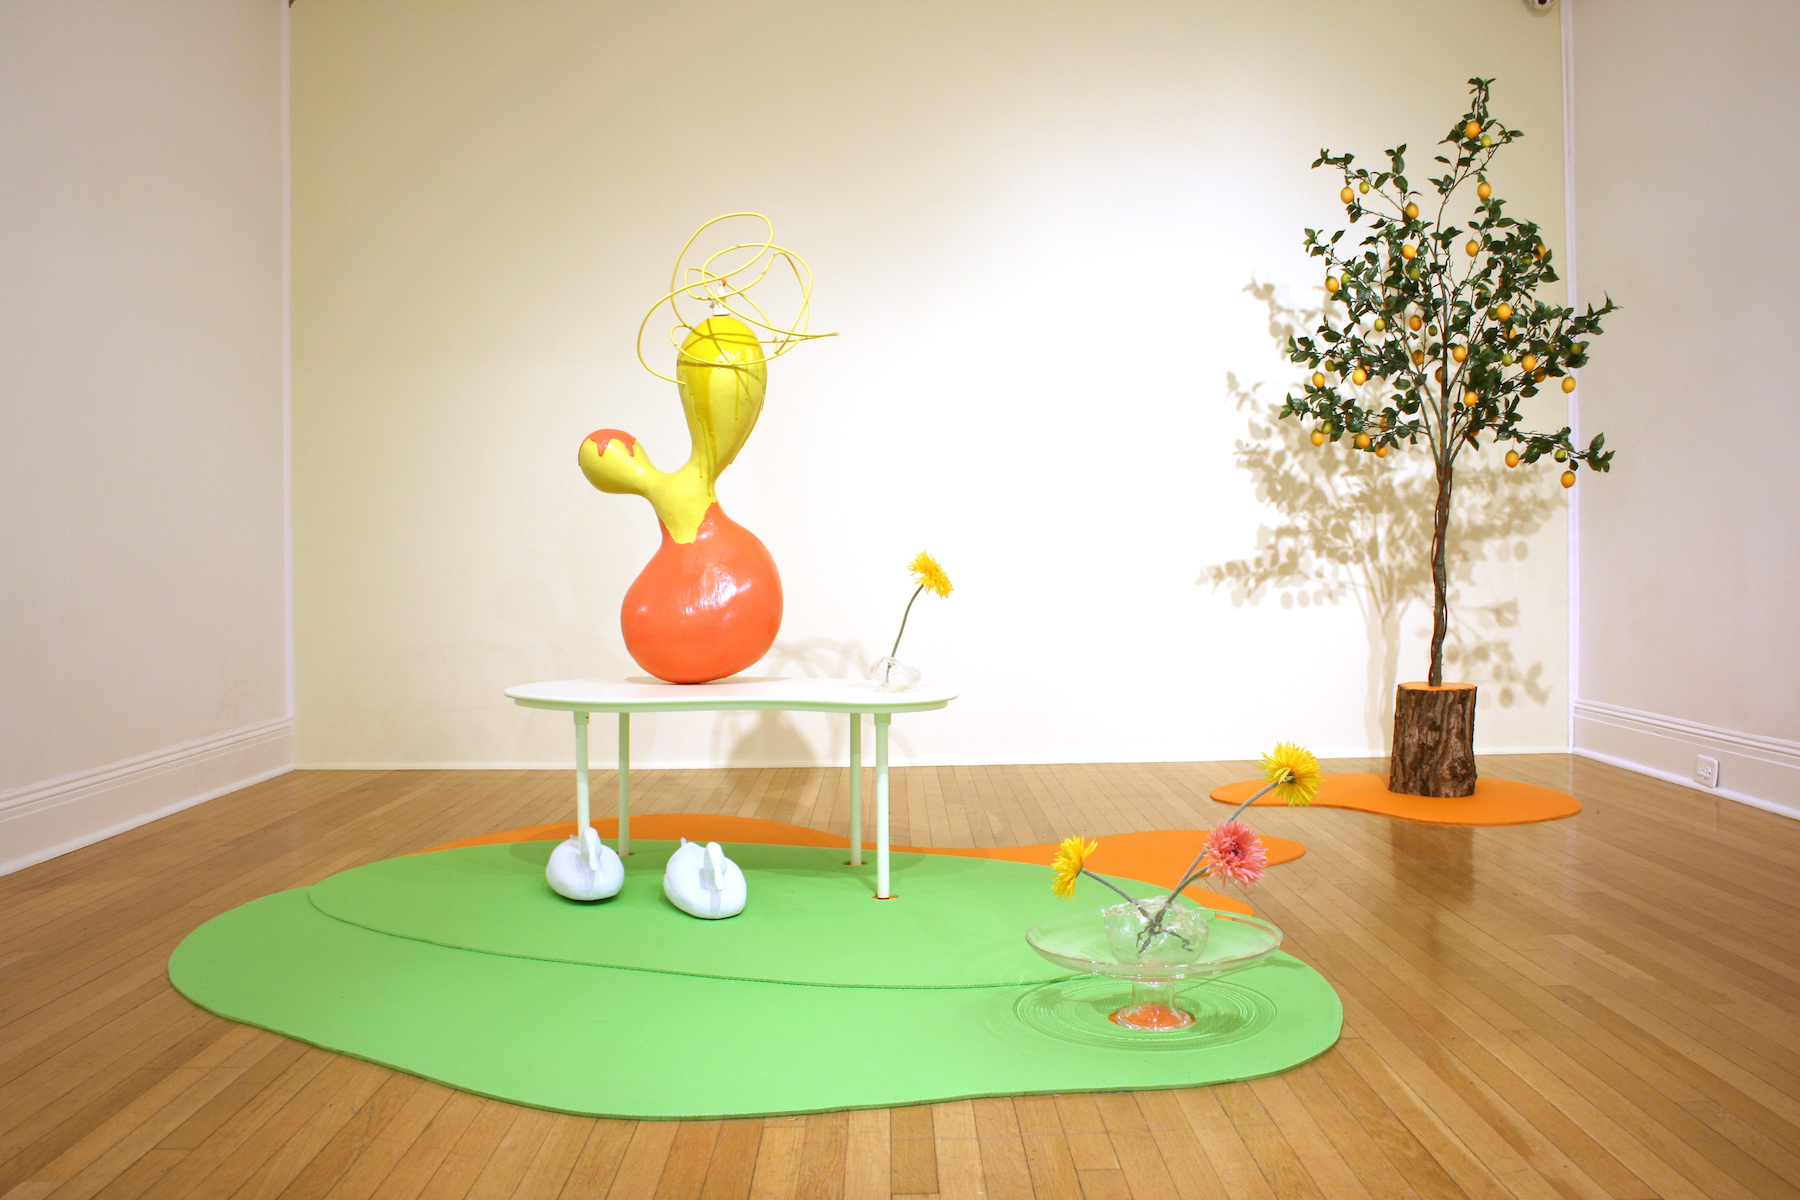 Other Landscape; Room With a View  2009  Pigmented fiberglass, polychrome steel, found china bird, wood, foam mats, blown glass, plastic ducks, flowers, artificial lemon tree, inflatable dimensions variable